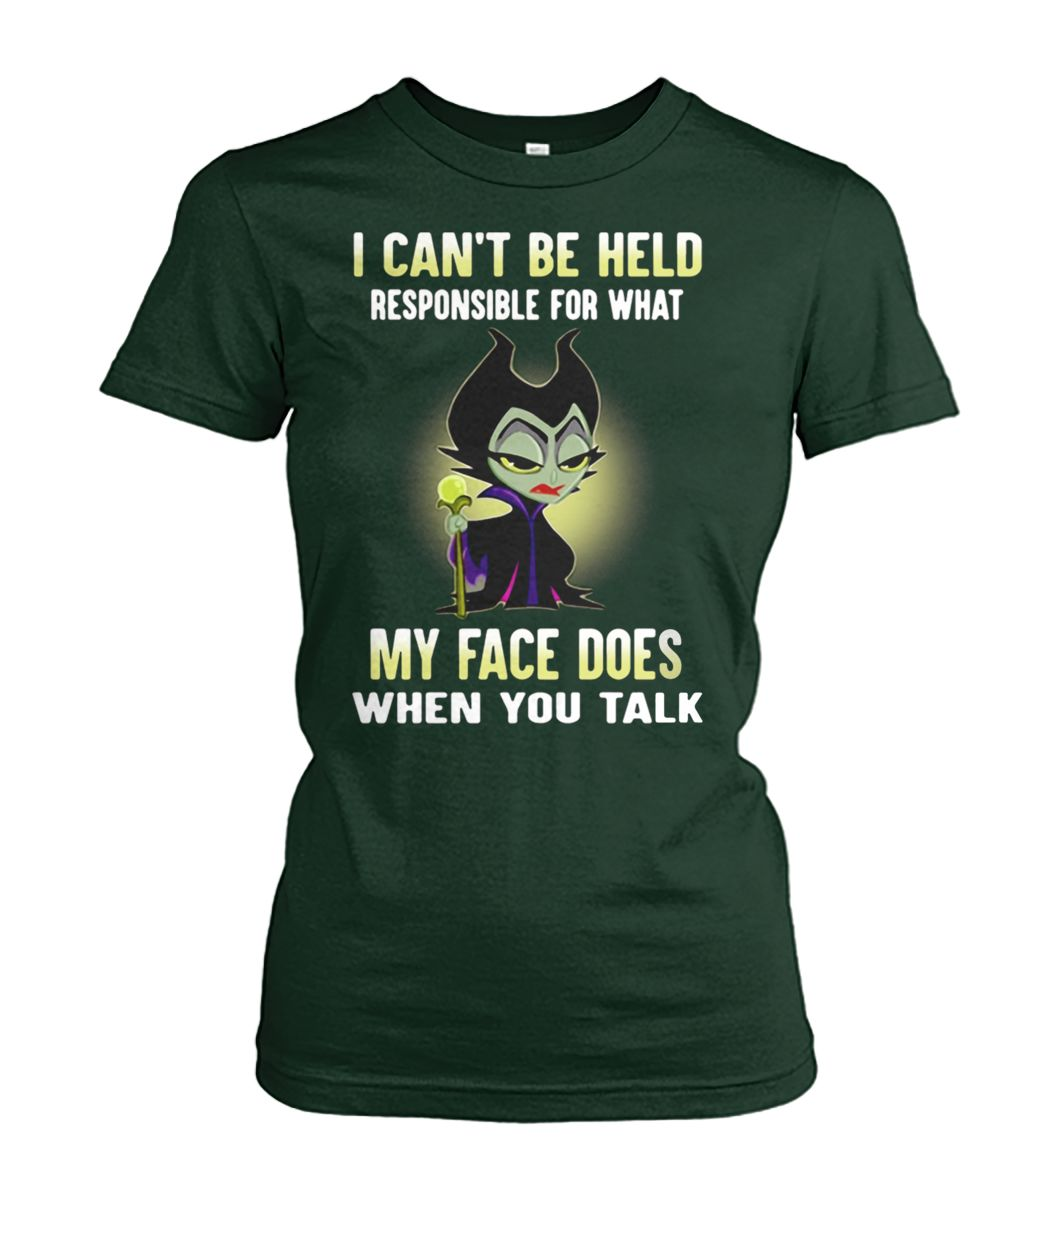 [Hot version] Maleficent I can't be held responsible for what my face does when you talk shirt